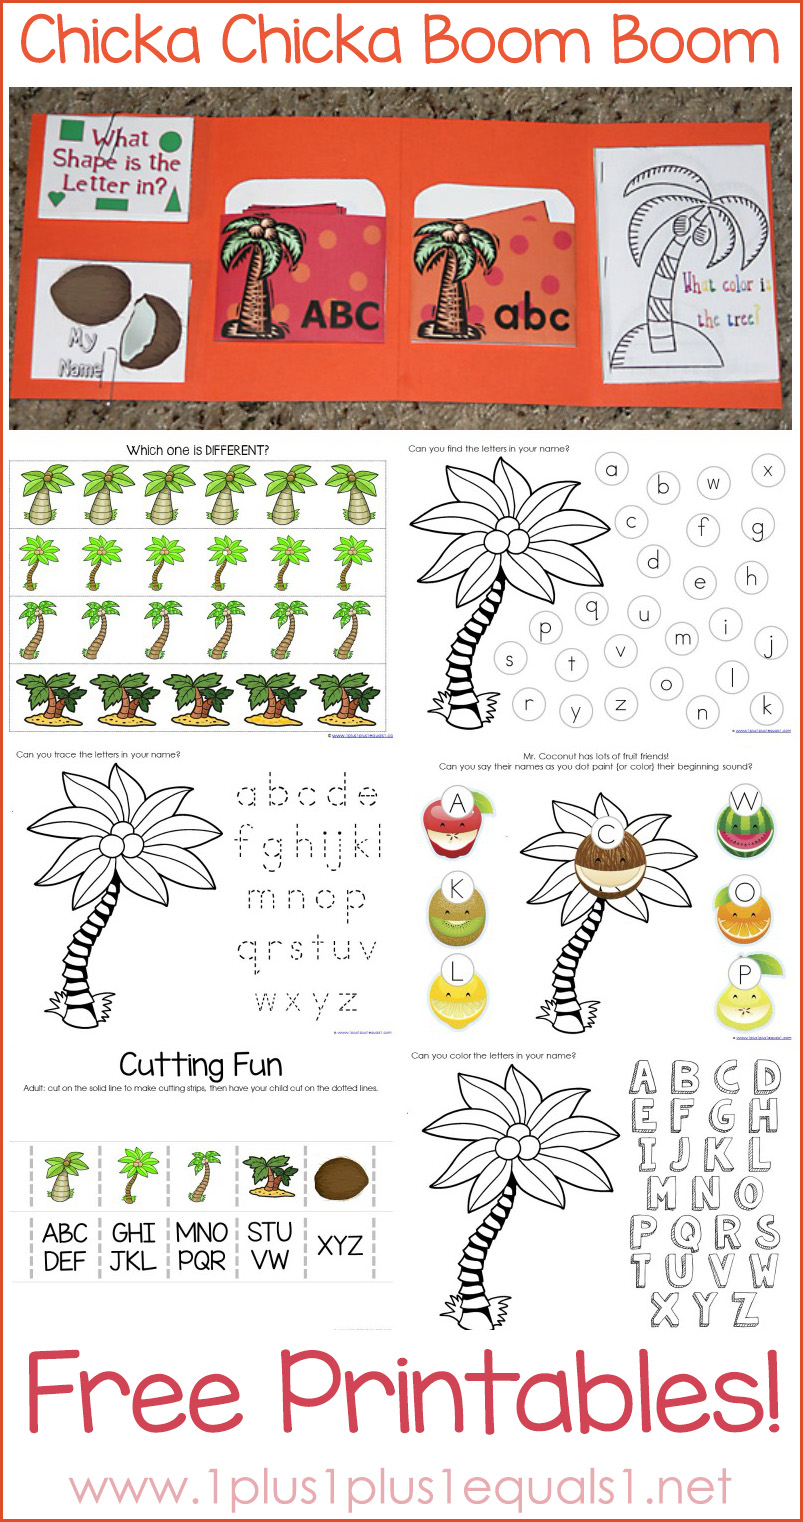 photo relating to Chicka Chicka Boom Boom Printable called Chicka Chicka Growth Growth Totally free Printables and Crafts